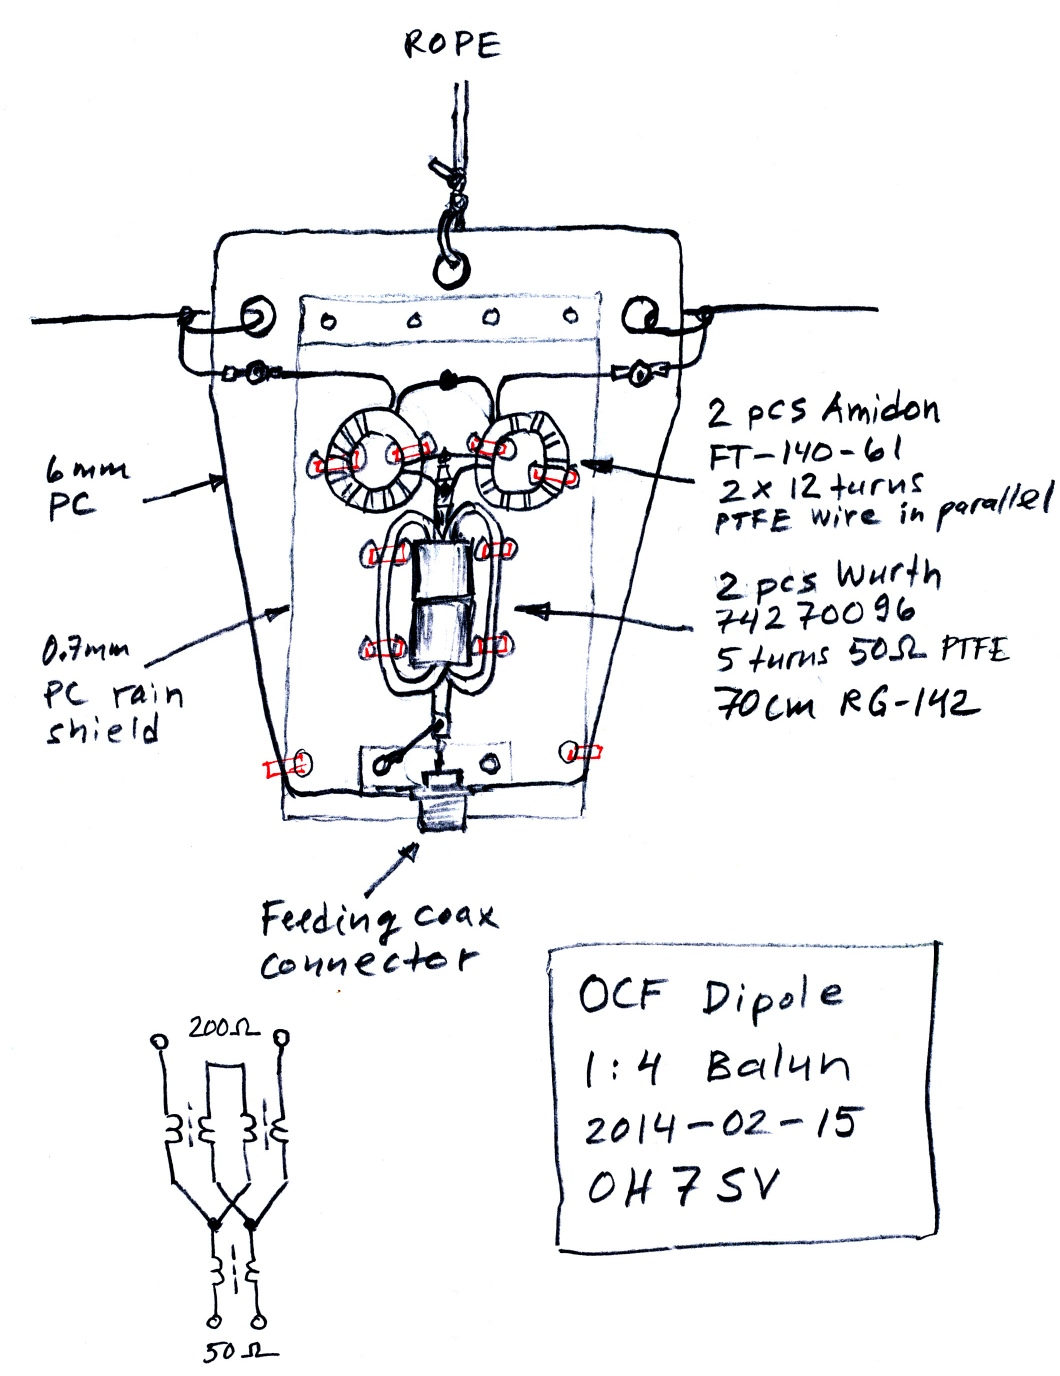 Enhanced OCF Dipole Balun (Windom balun)